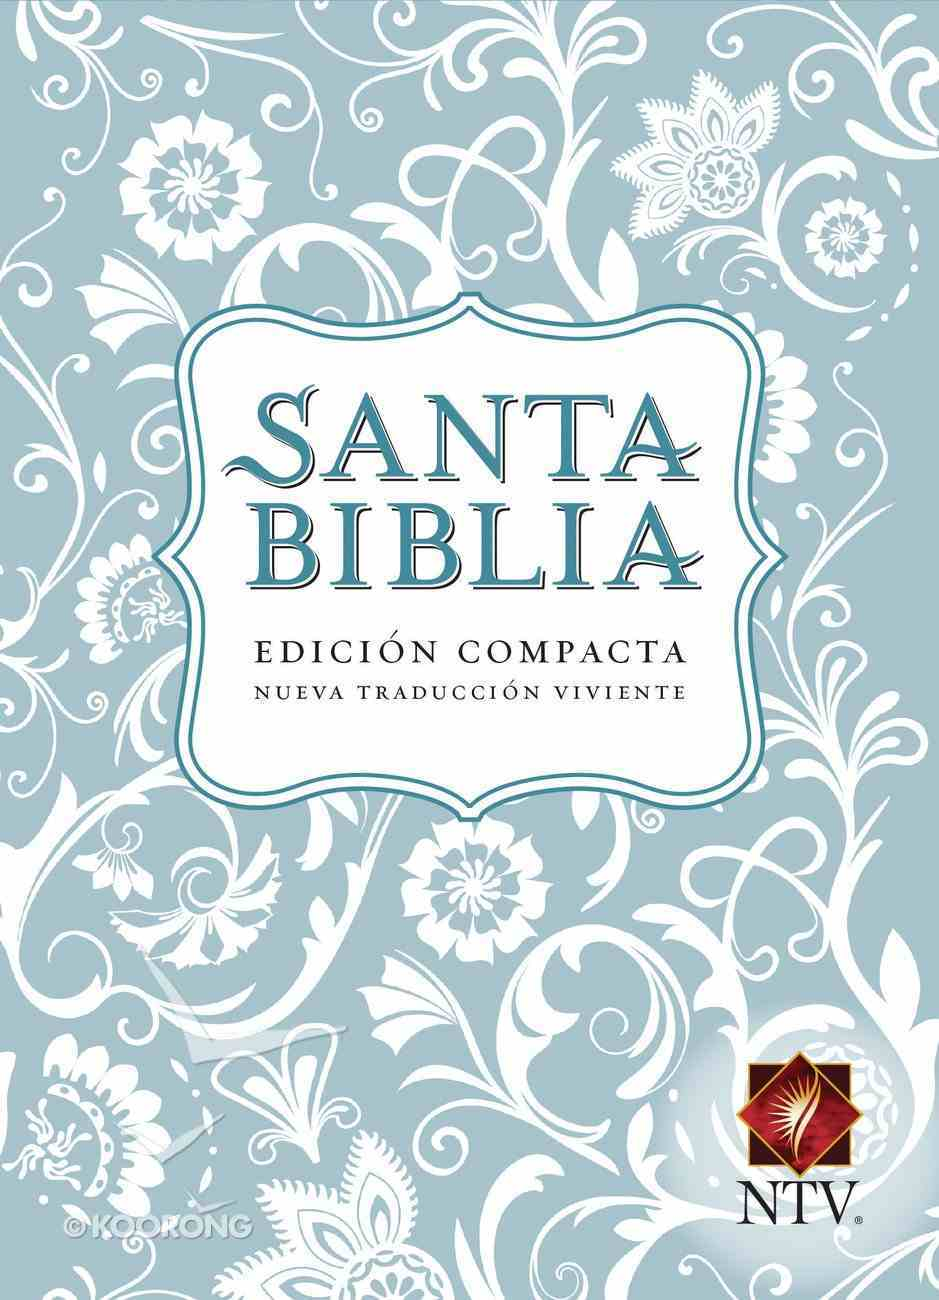 Ntv Santa Biblia Edicion Compacta Light Blue (Black Letter Edition) (Compact) Imitation Leather